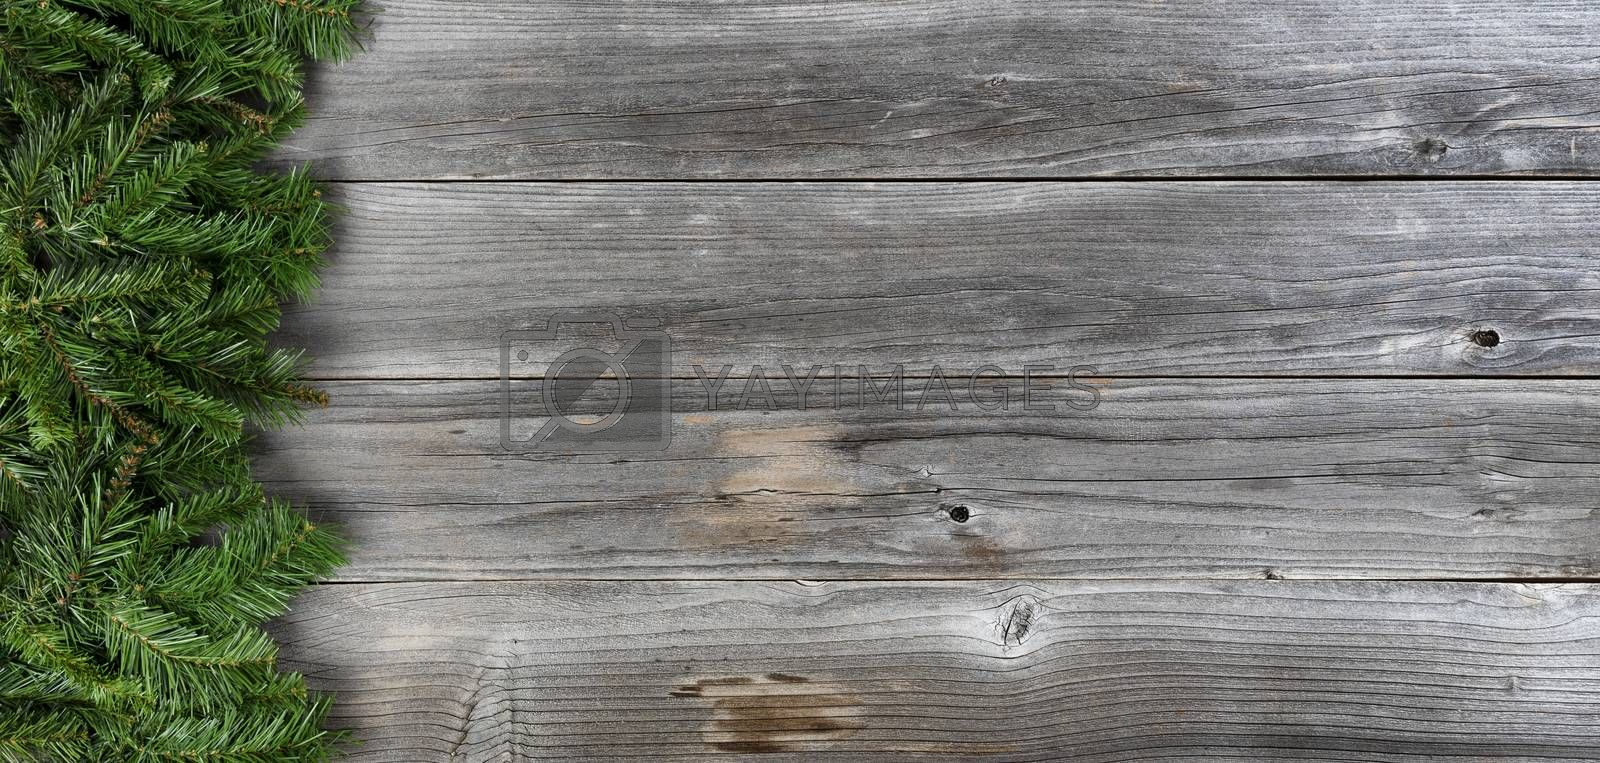 Merry Christmas and Happy New Year concept with fir branches on left side of rustic wooden boards